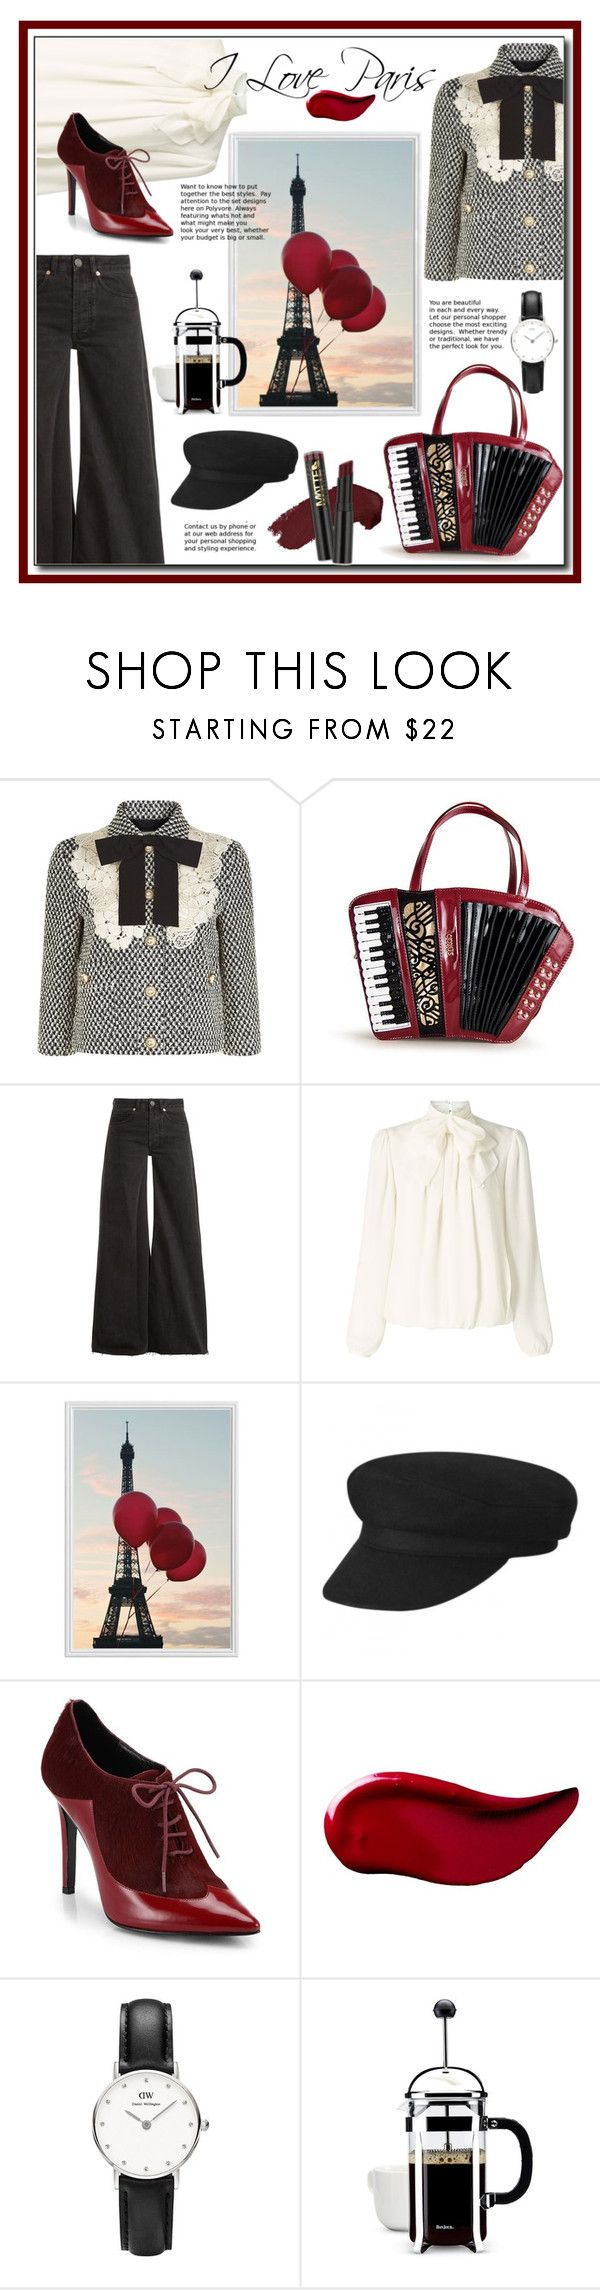 """I Love Paris"" by annoula-g ❤ liked on Polyvore featuring Gucci, Raey, Somerset by Alice Temperley, Pottery Barn, Sigerson Morrison, Kat Von D, Daniel Wellington, BonJour and L.A. Girl"